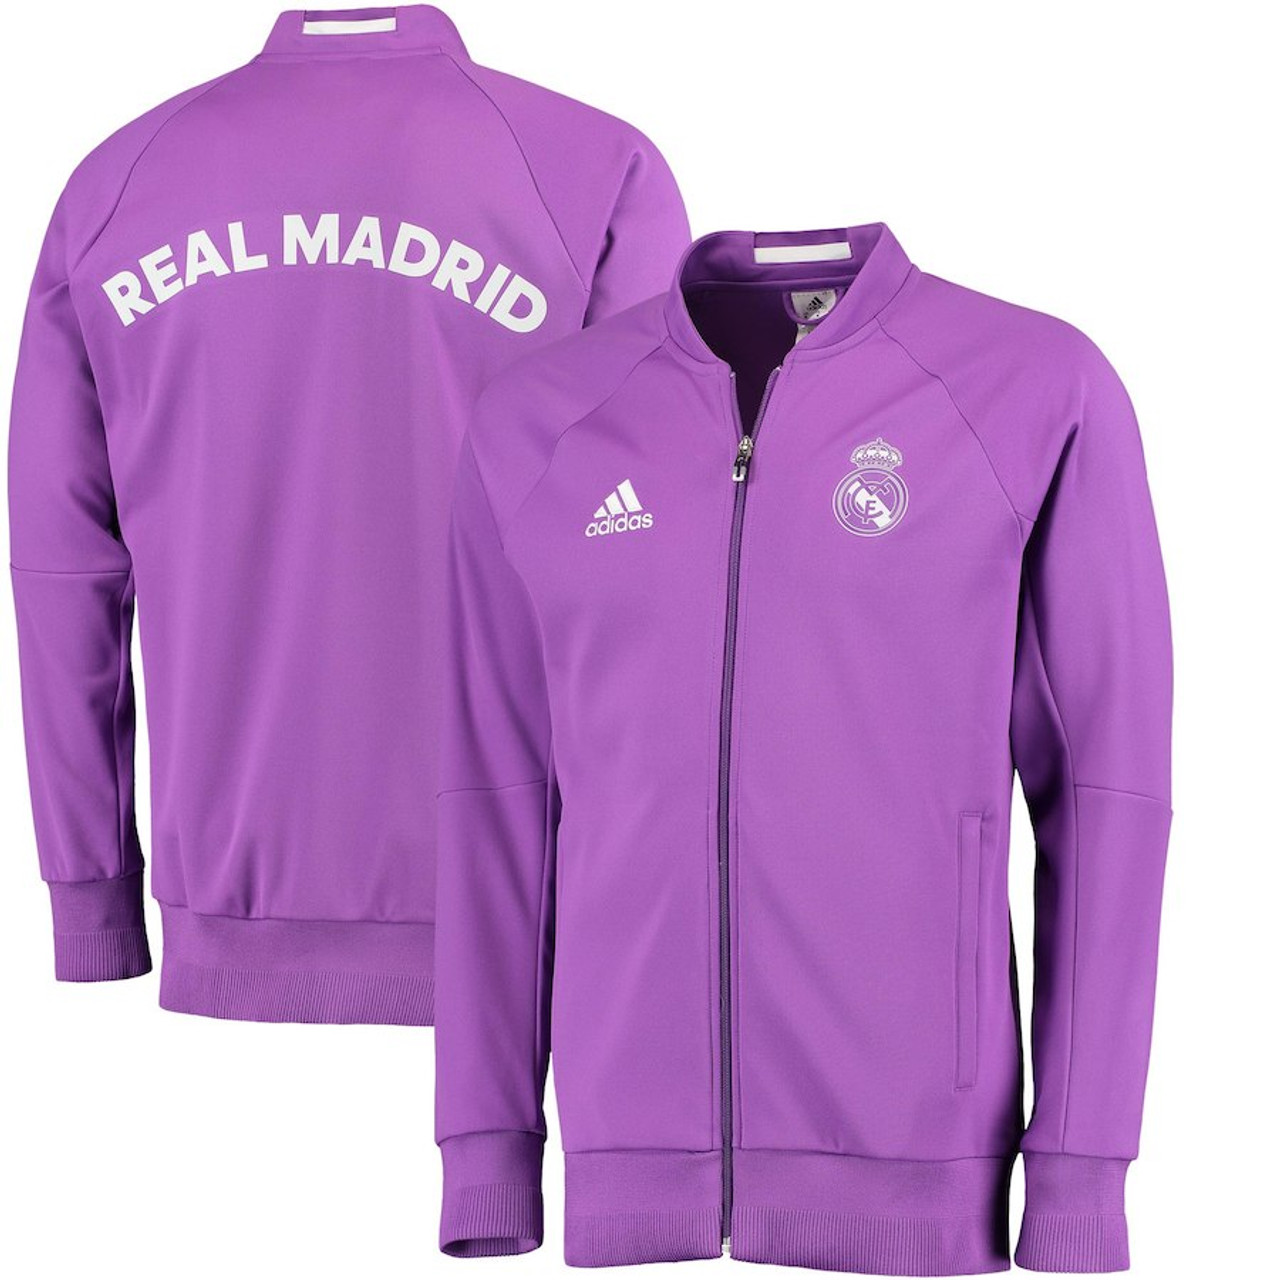 buy online 3eb6a 9f46c ADIDAS REAL MADRID 2017 Anthem Full-Zip Jacket - Purple